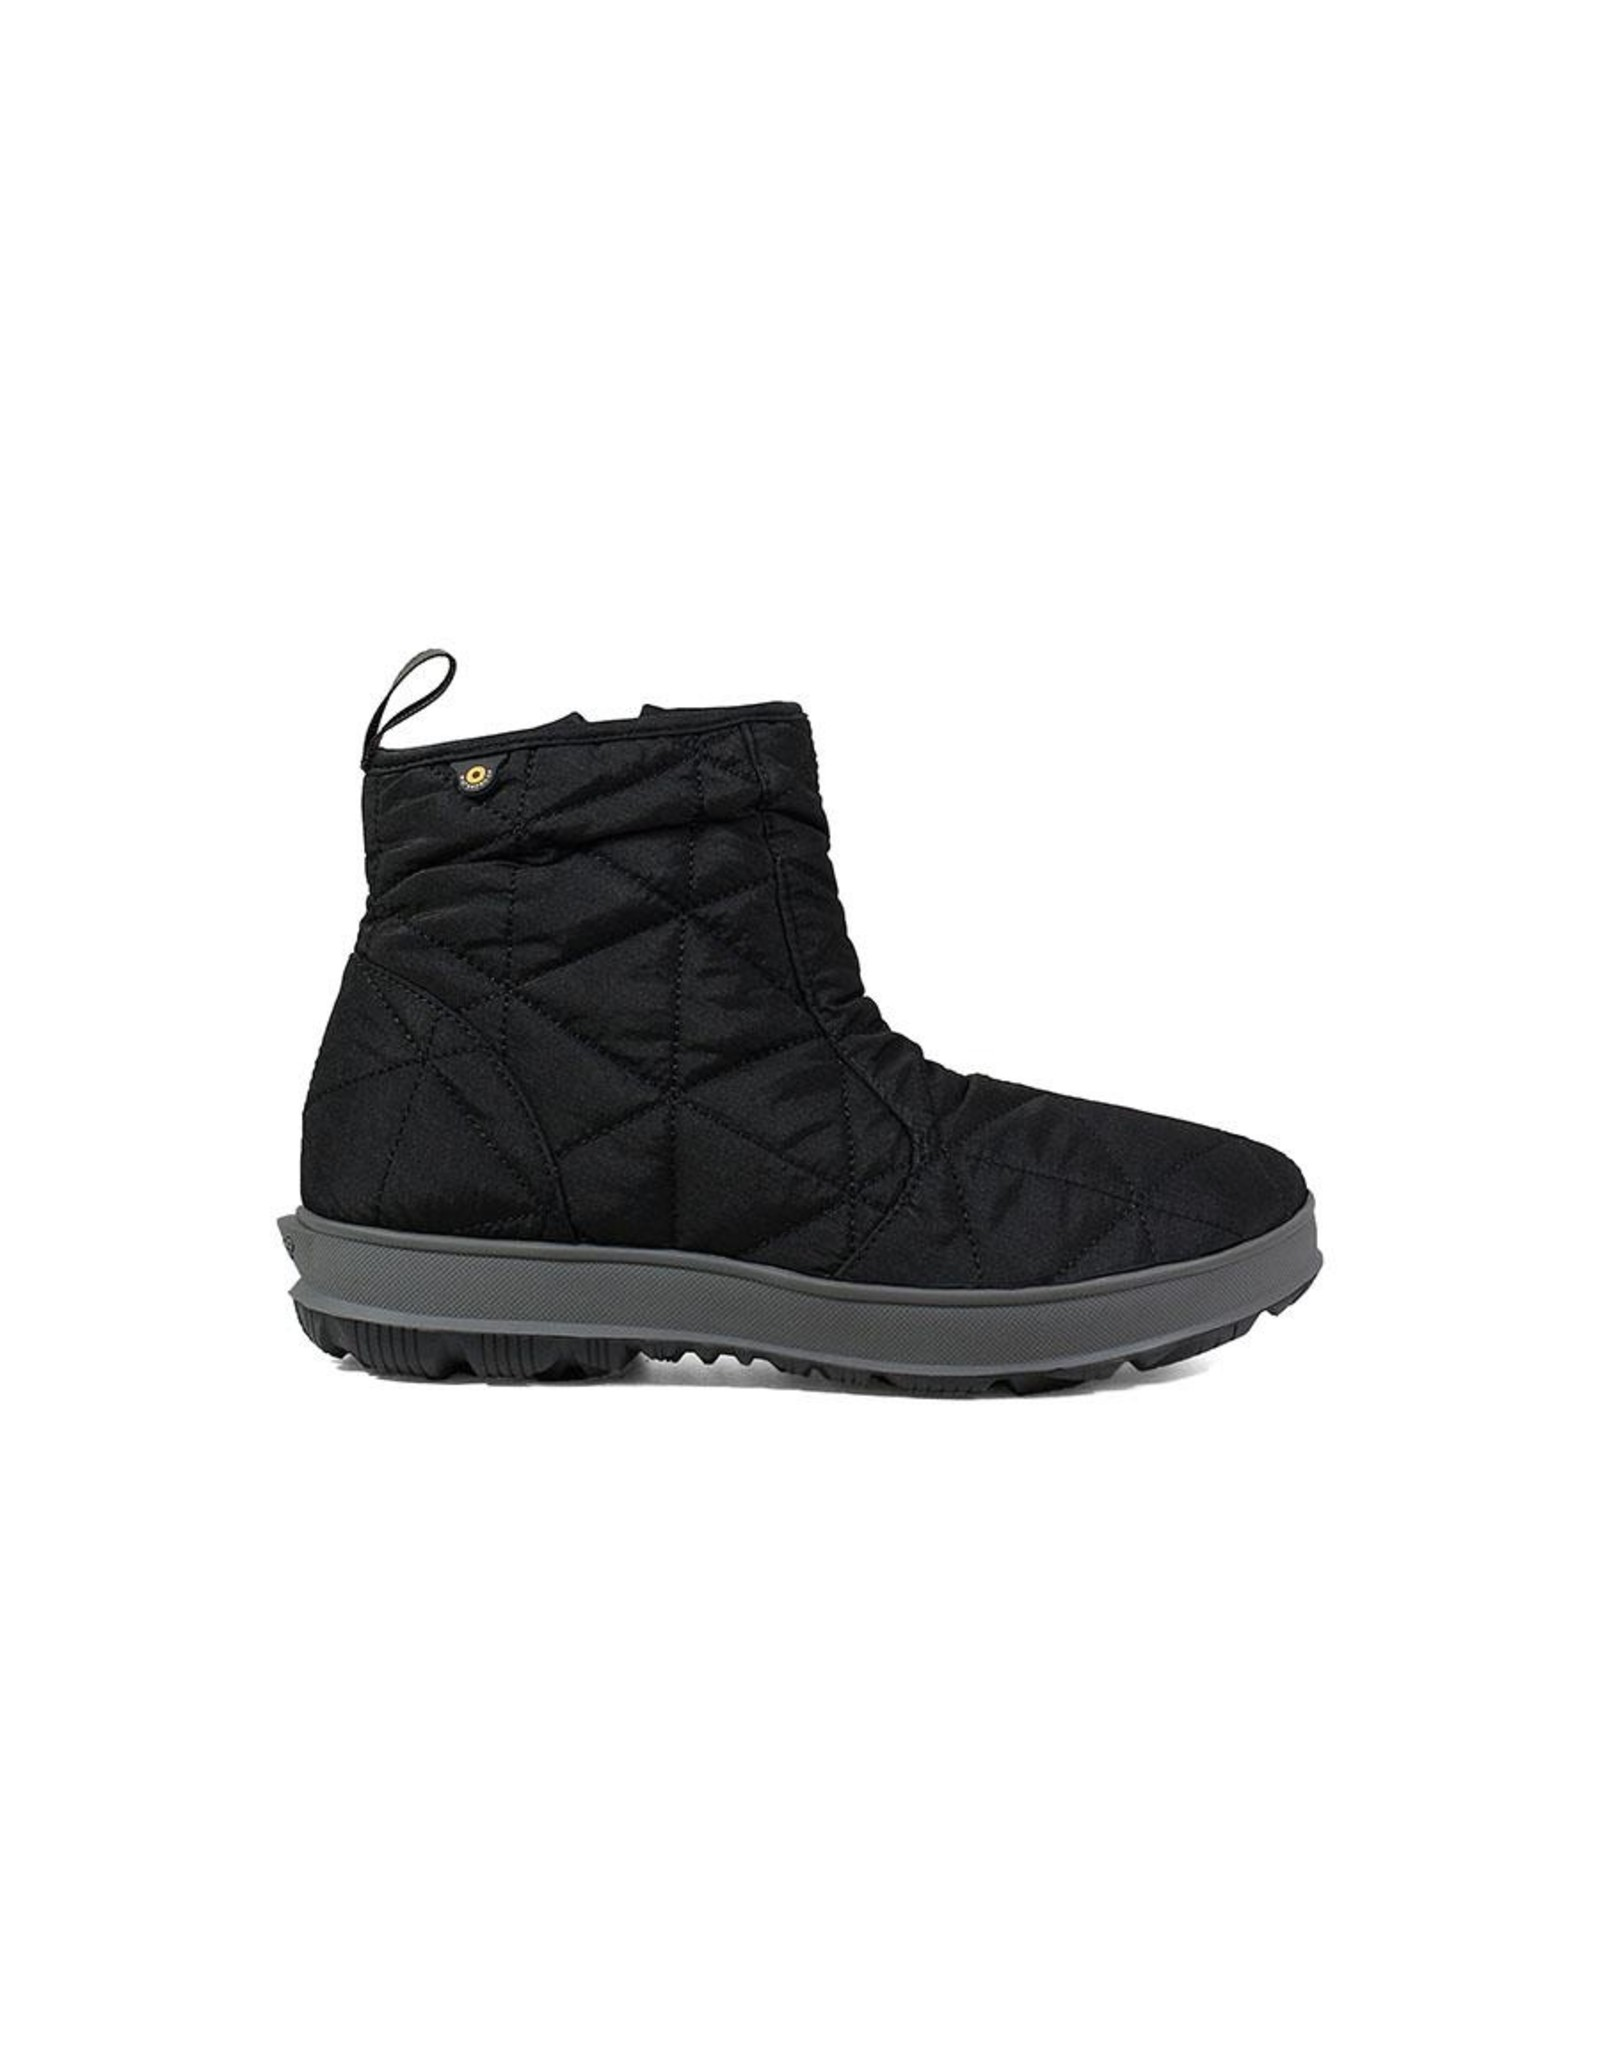 BOGS WOMEN'S SNOWDAY LOW BOOT-BLACK